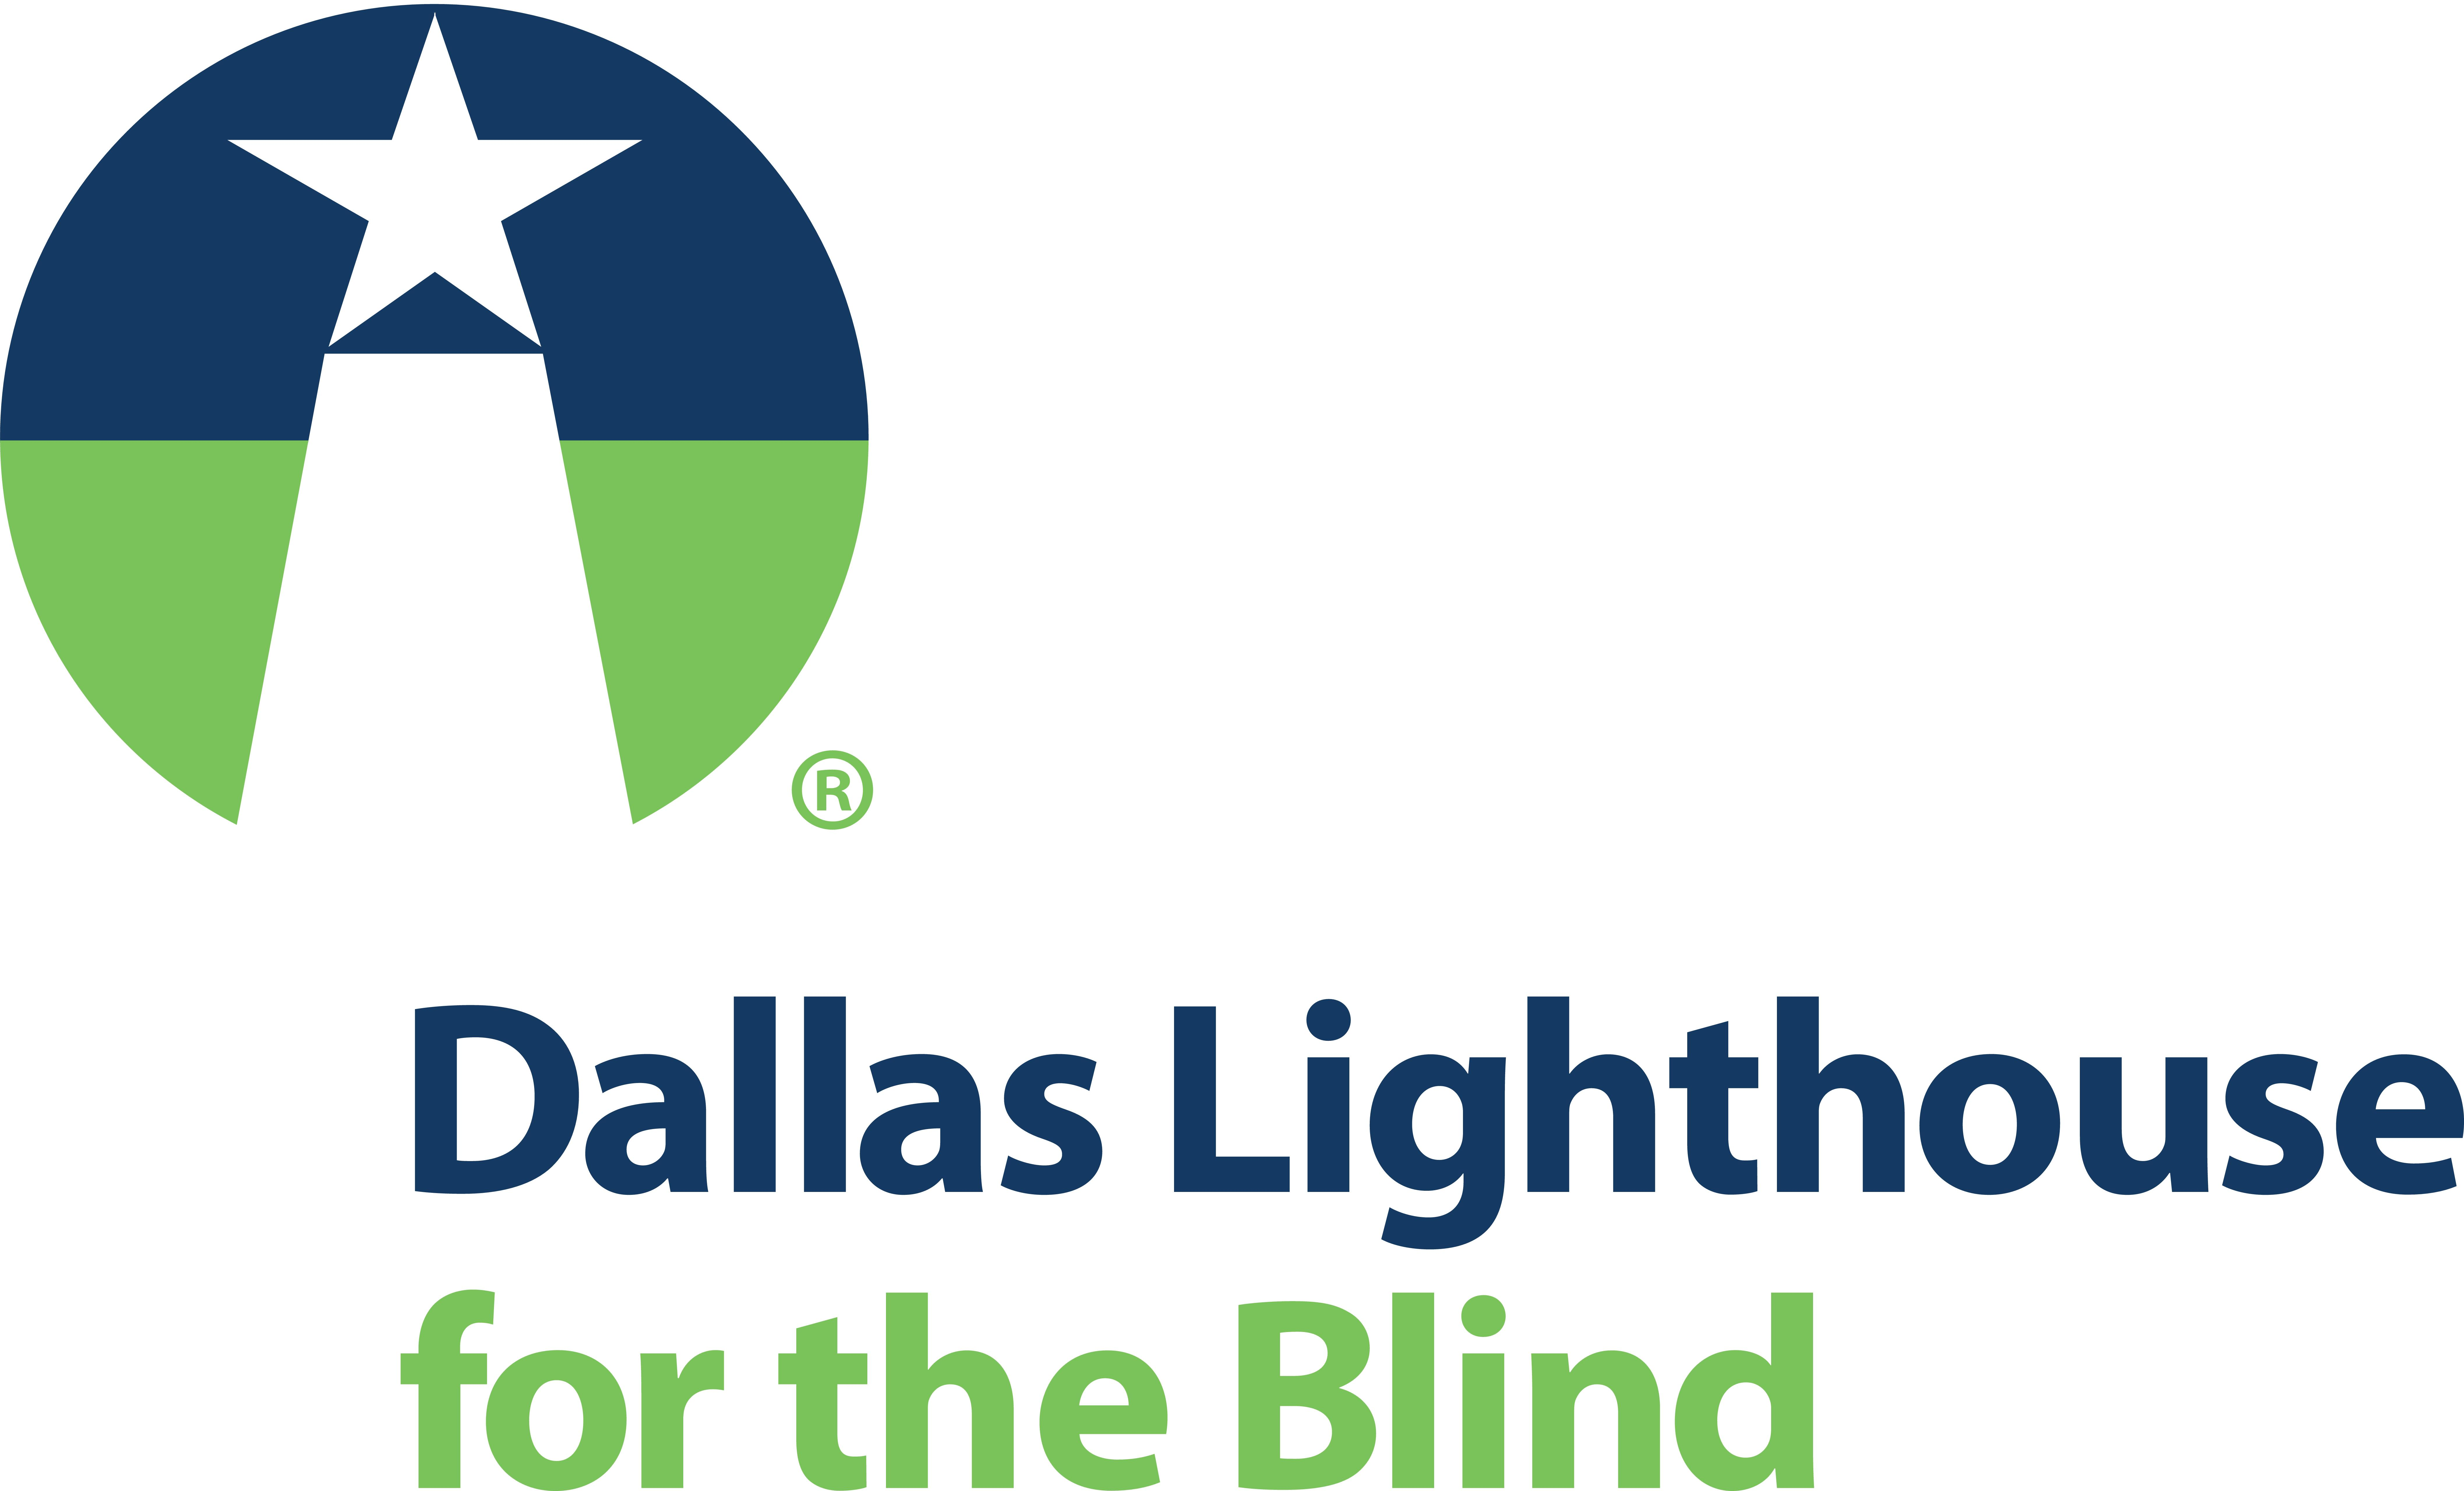 antonio the blind san blinds products lighthouse salb for partnership uiwrso with